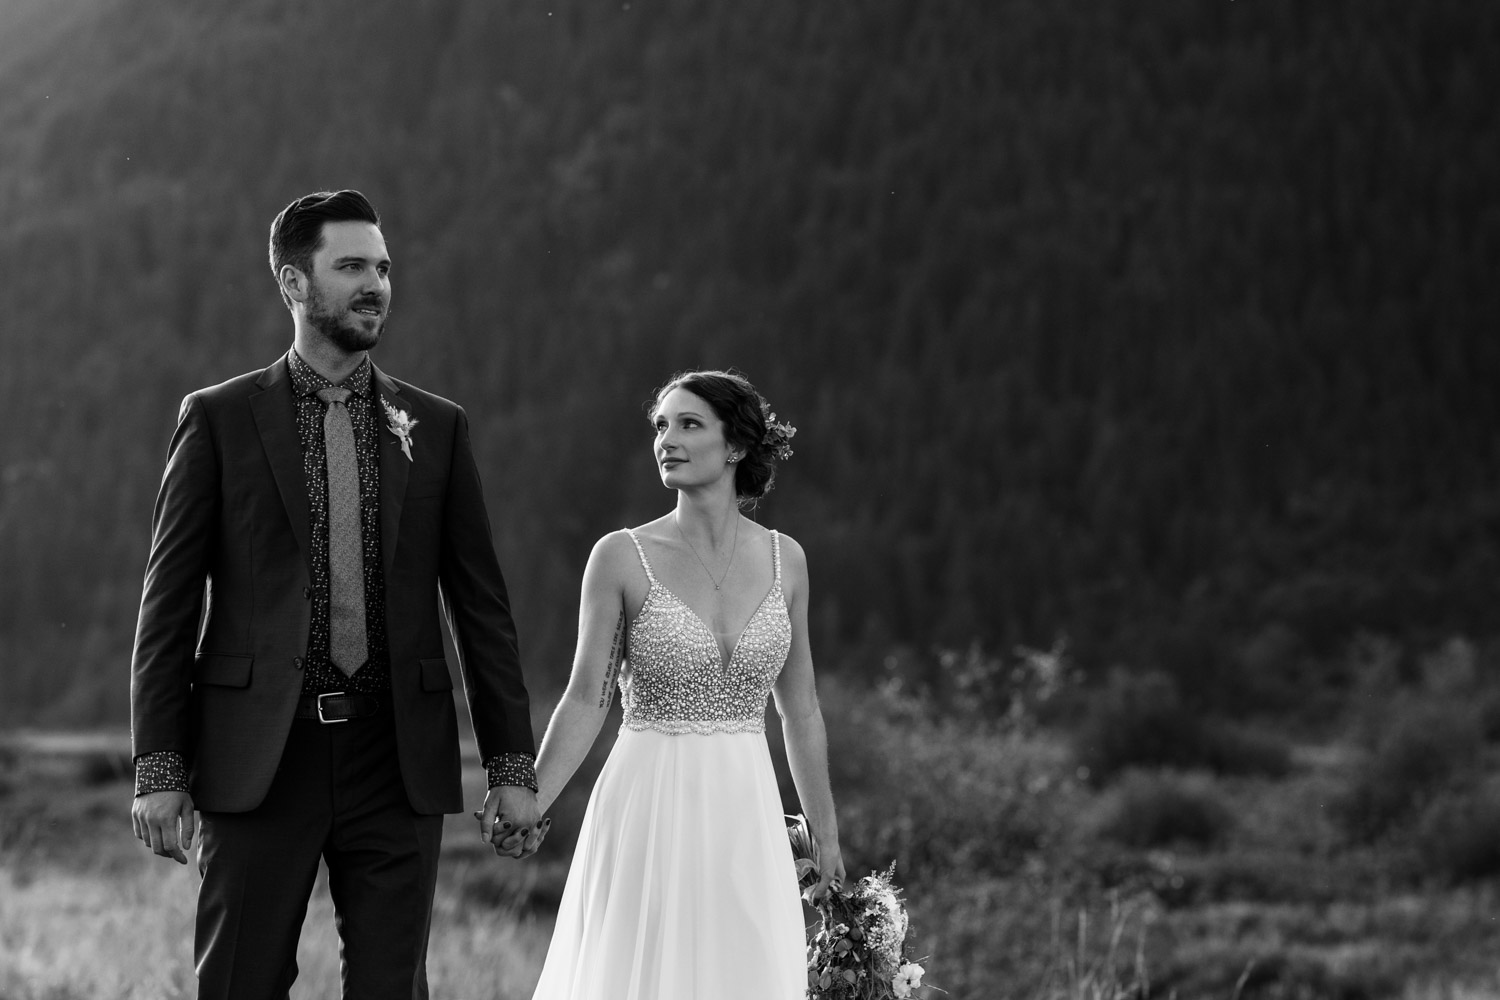 Best places for an elopement in Canada